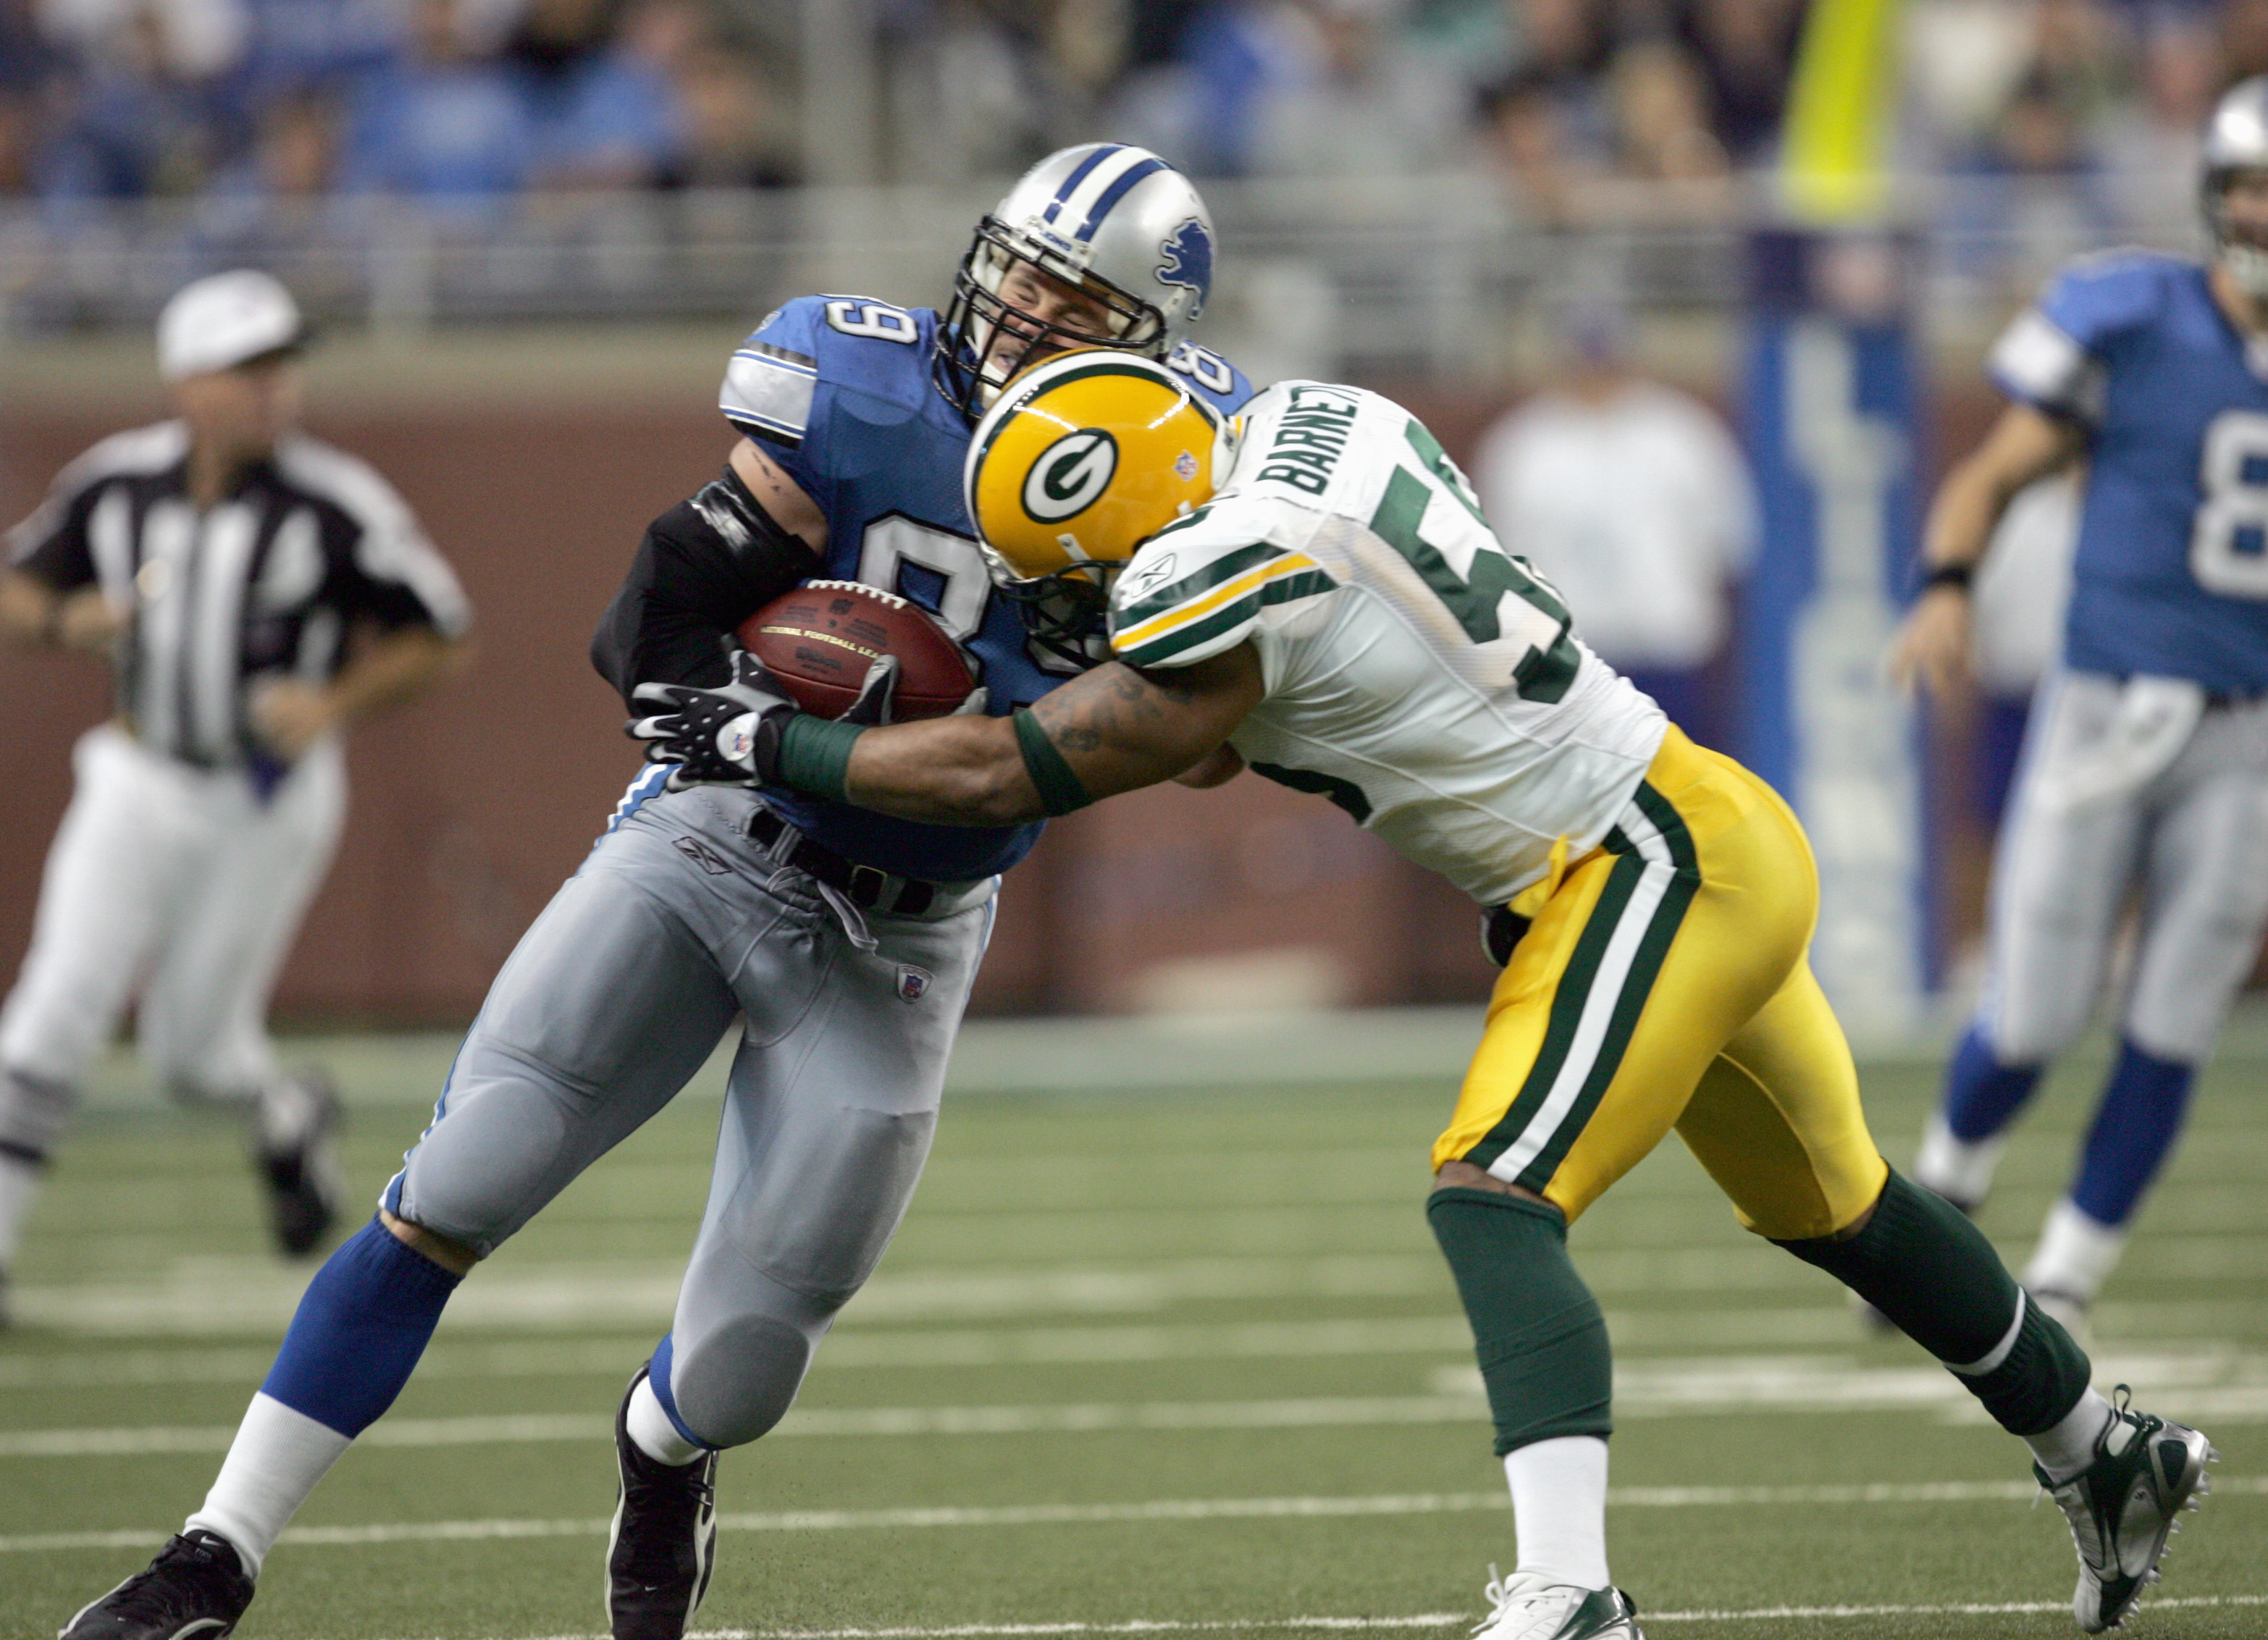 DETROIT - SEPTEMBER 24:  Nick Barnett #56 of the Green Bay Packers tackles Dan Campbell #89 of the Detroit Lions on September 24, 2006 at Ford Field in Detroit, Michigan. (Photo by Jonathan Daniel/Getty Images)